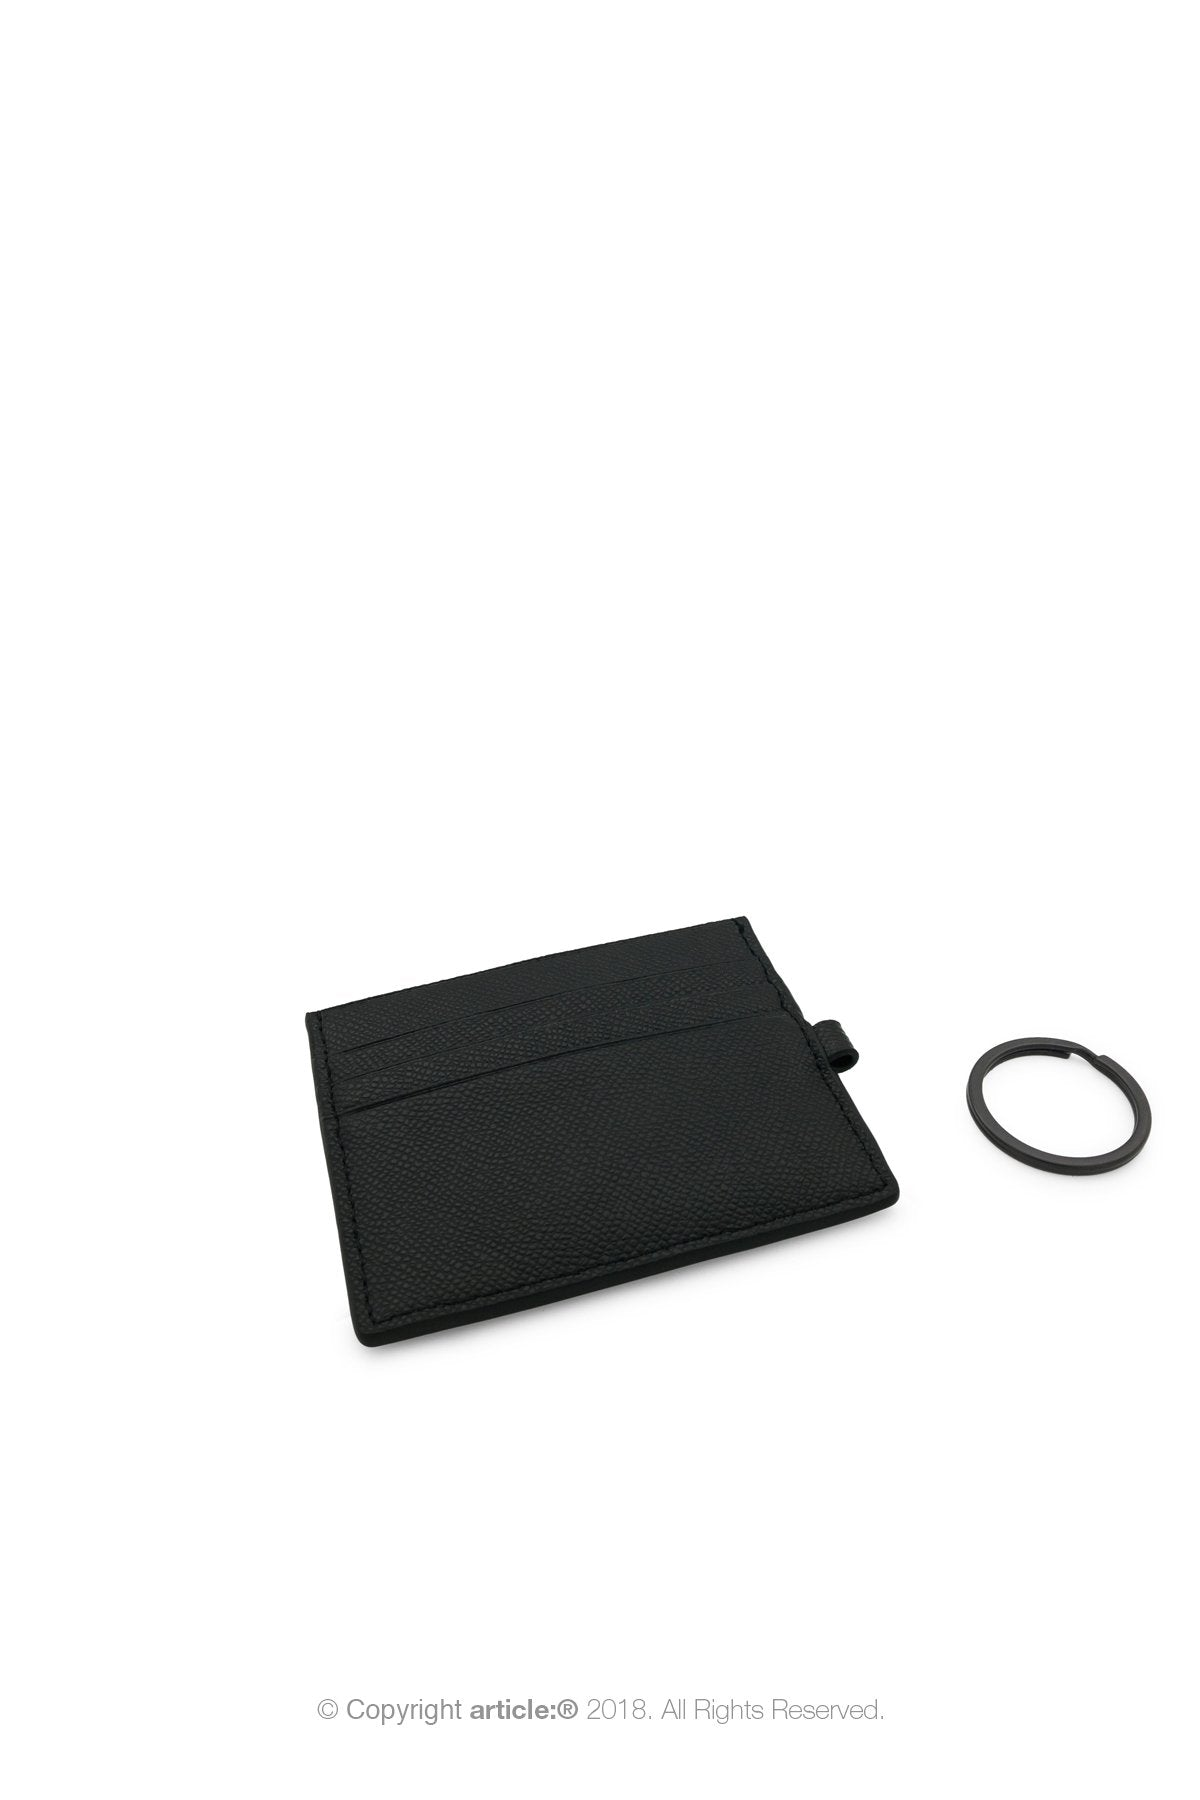 article: #200 Card Holder - Noir